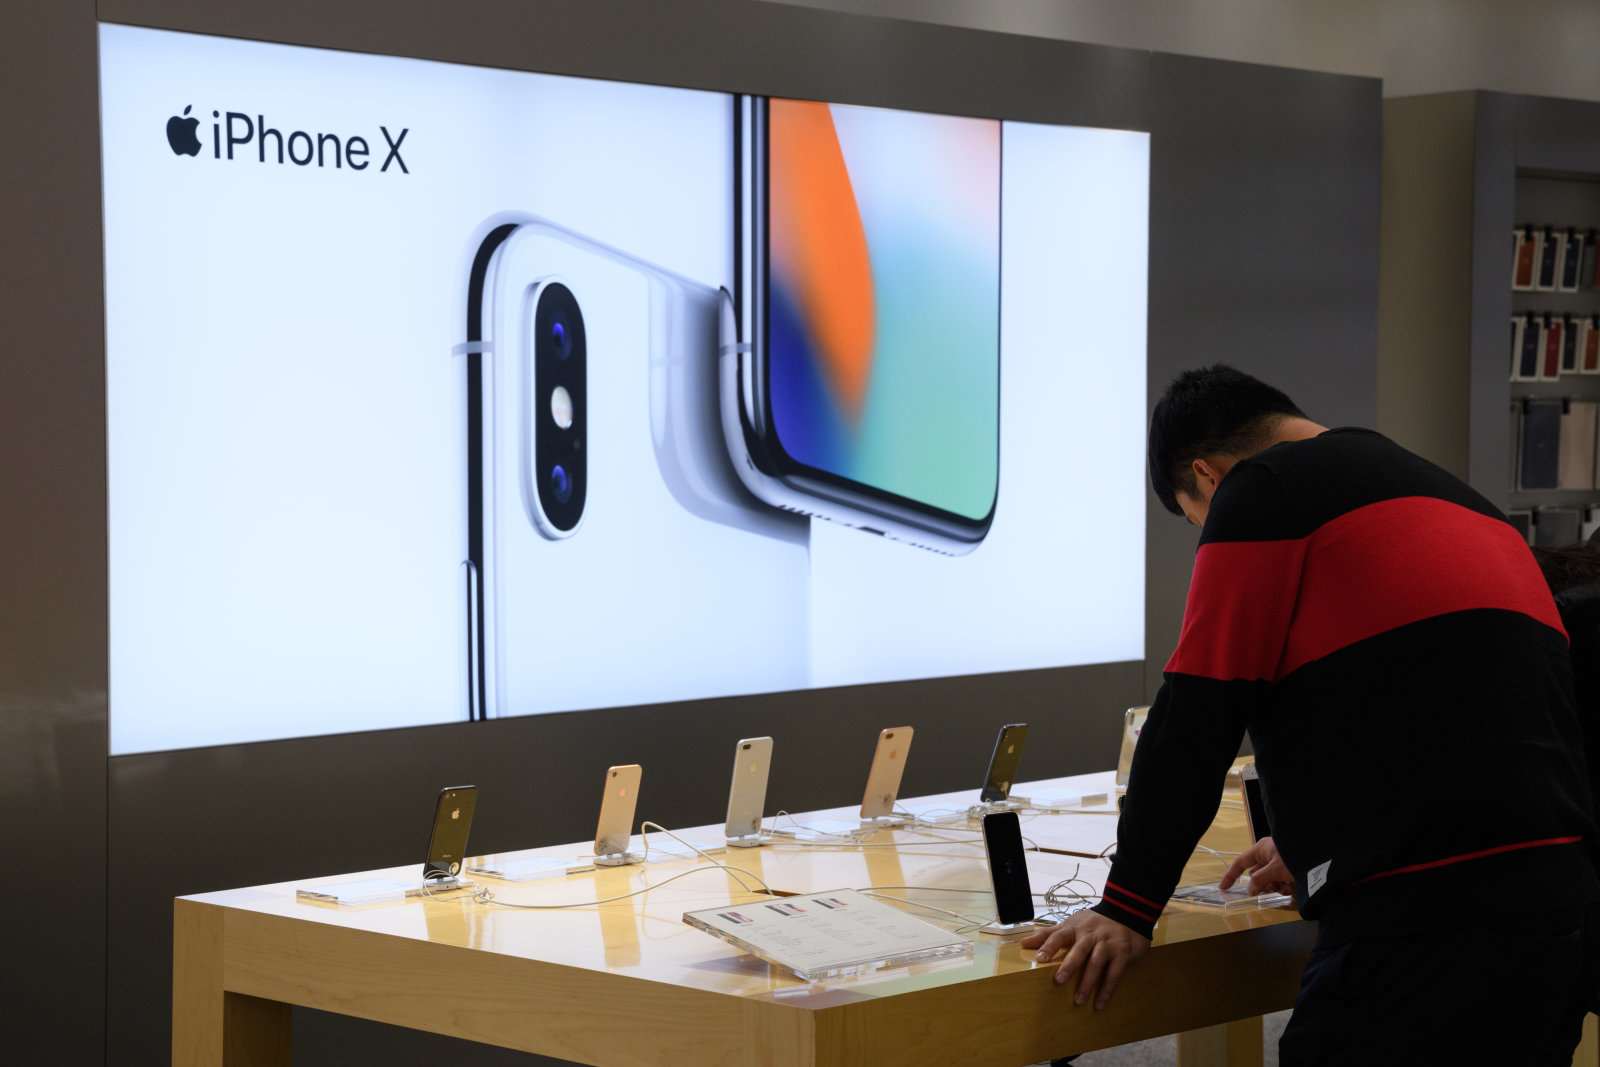 A customer looks at an Apple Inc. iPhone X at a SoftBank Group Corp. store in Tokyo, Japan, on Thursday, Feb. 22, 2018. Billionaire founderMasayoshi Sonsaidthis month that the company will start preparing for the mobile IPO and aims for a listing within a year. It could still end up scrapping the plan, the company said on Feb. 7. Photographer: Akio Kon/Bloomberg via Getty Images